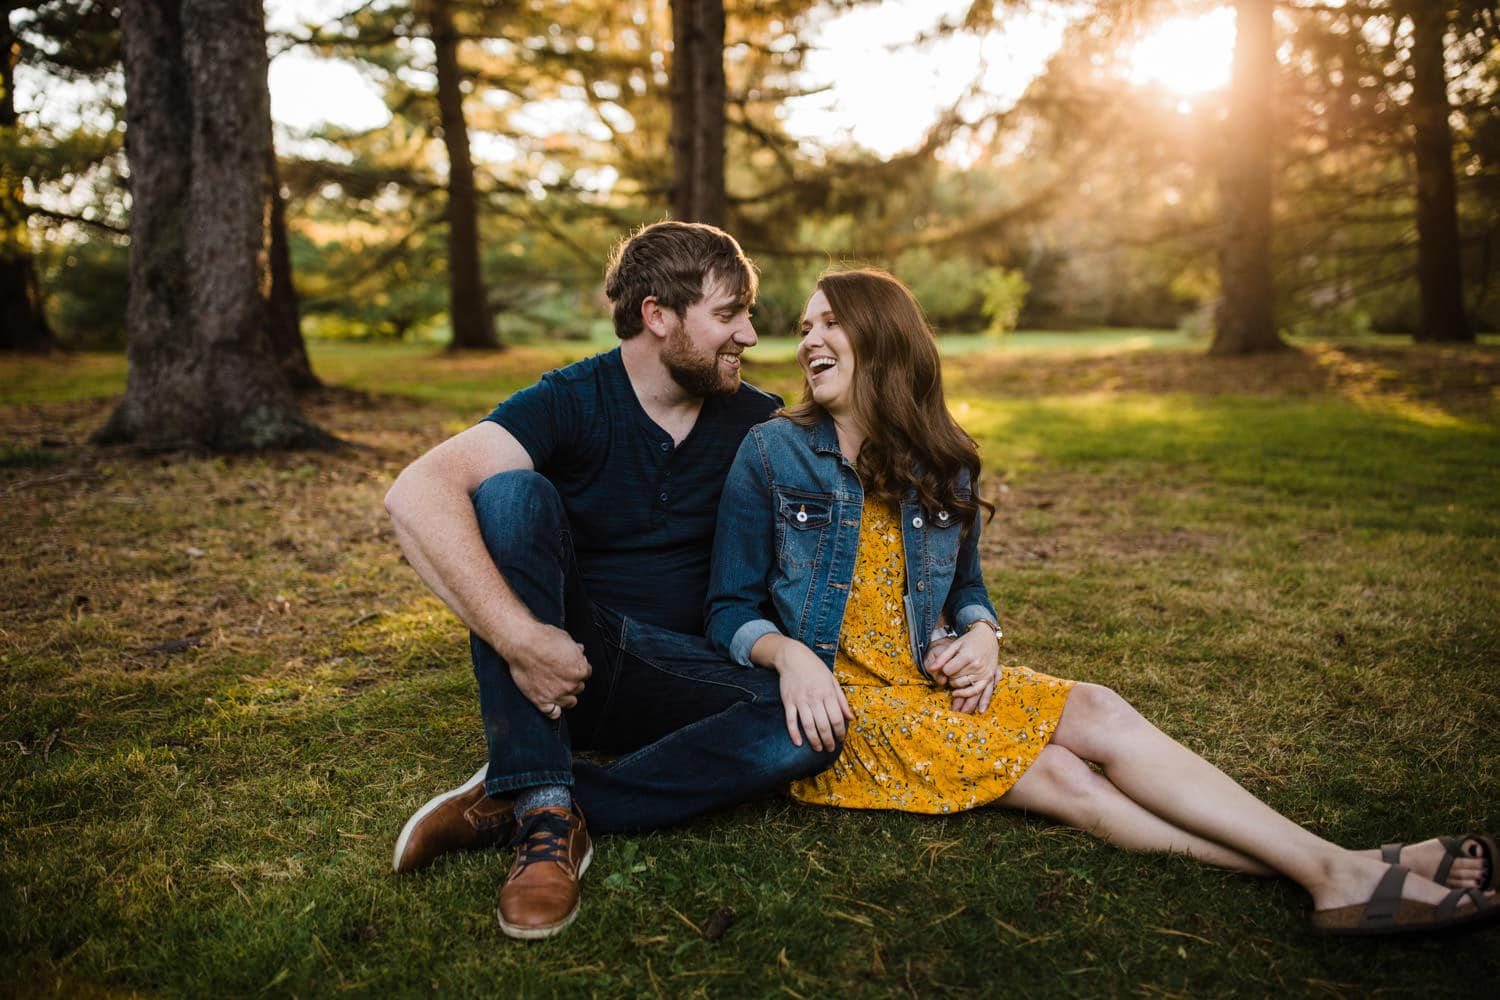 couple sit and laugh together in park at sunset - ottawa arboretum engagement